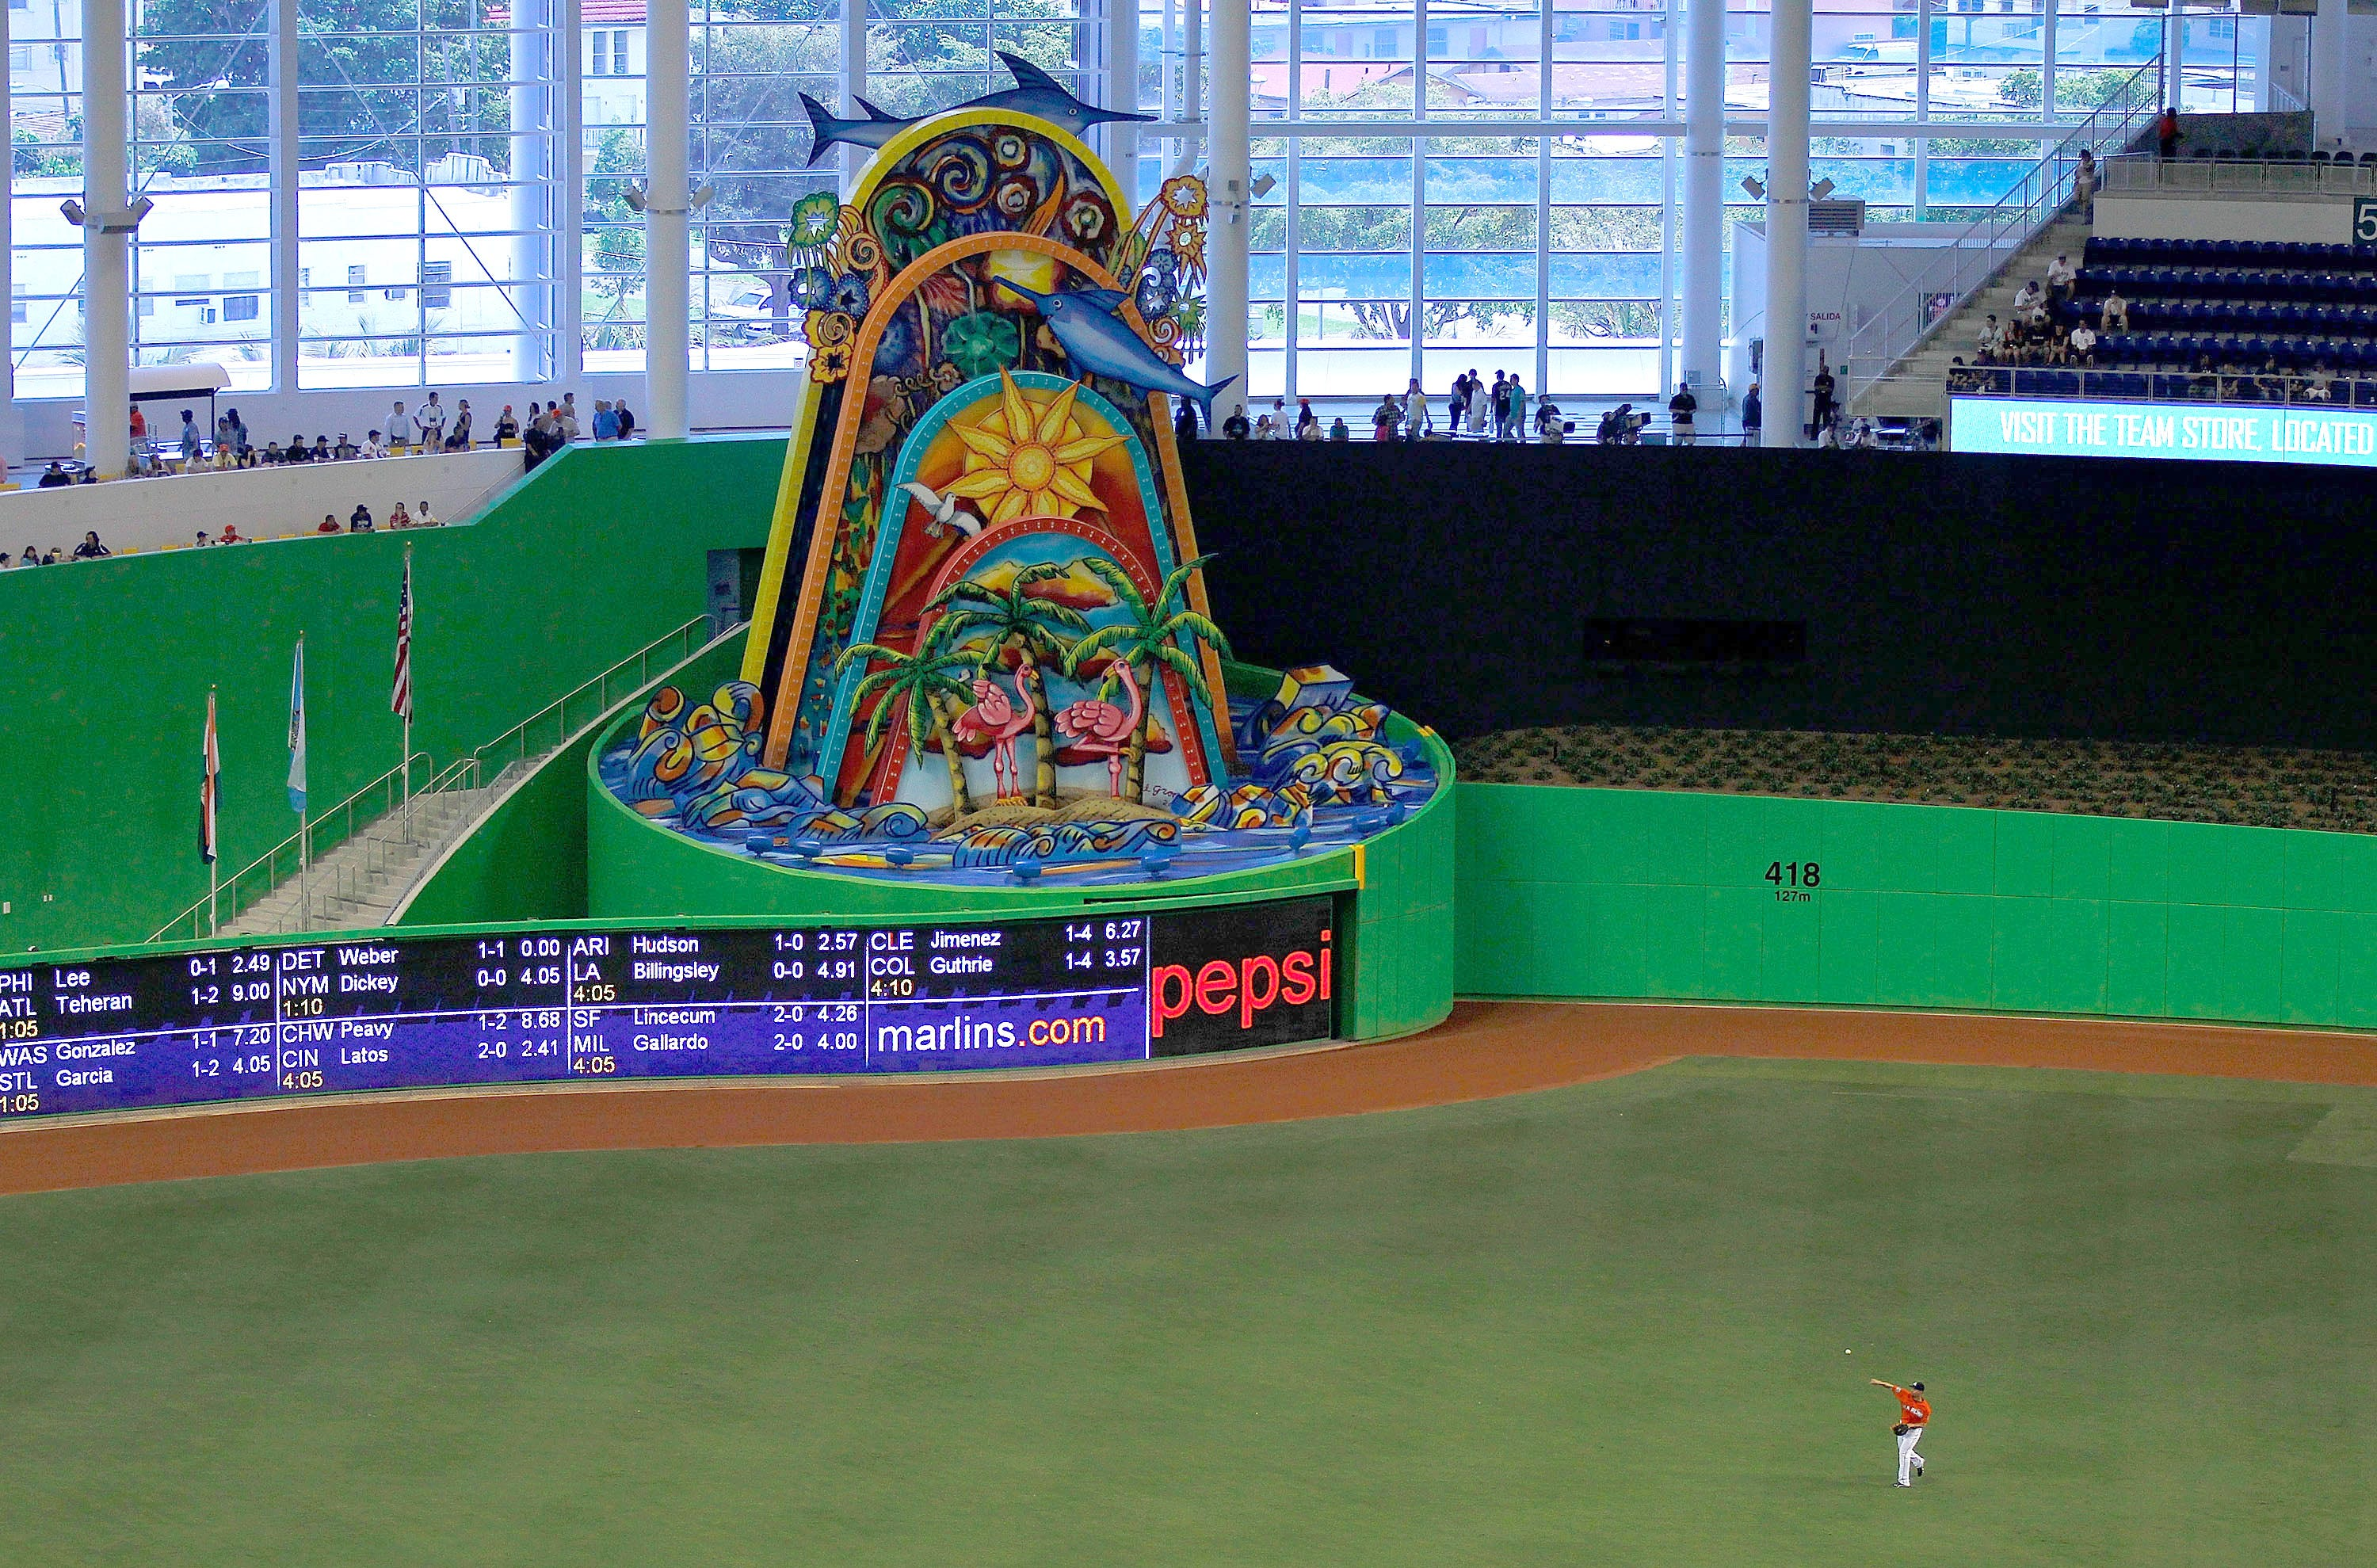 gty_142287522 Sorry Jeter, Marlins HR sculpture 'not movable'